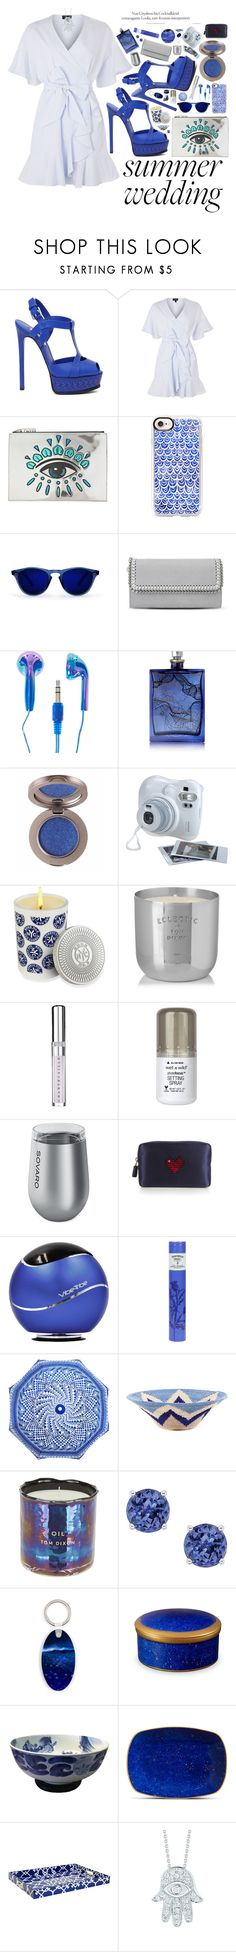 """""""Attending a Royal Wedding"""" by imaniasaboor ❤ liked on Polyvore featuring Casadei, Topshop, Kenzo, Casetify, STELLA McCARTNEY, The Beautiful Mind Series, Fujifilm, Bond No. 9, Tom Dixon and Chantecaille"""